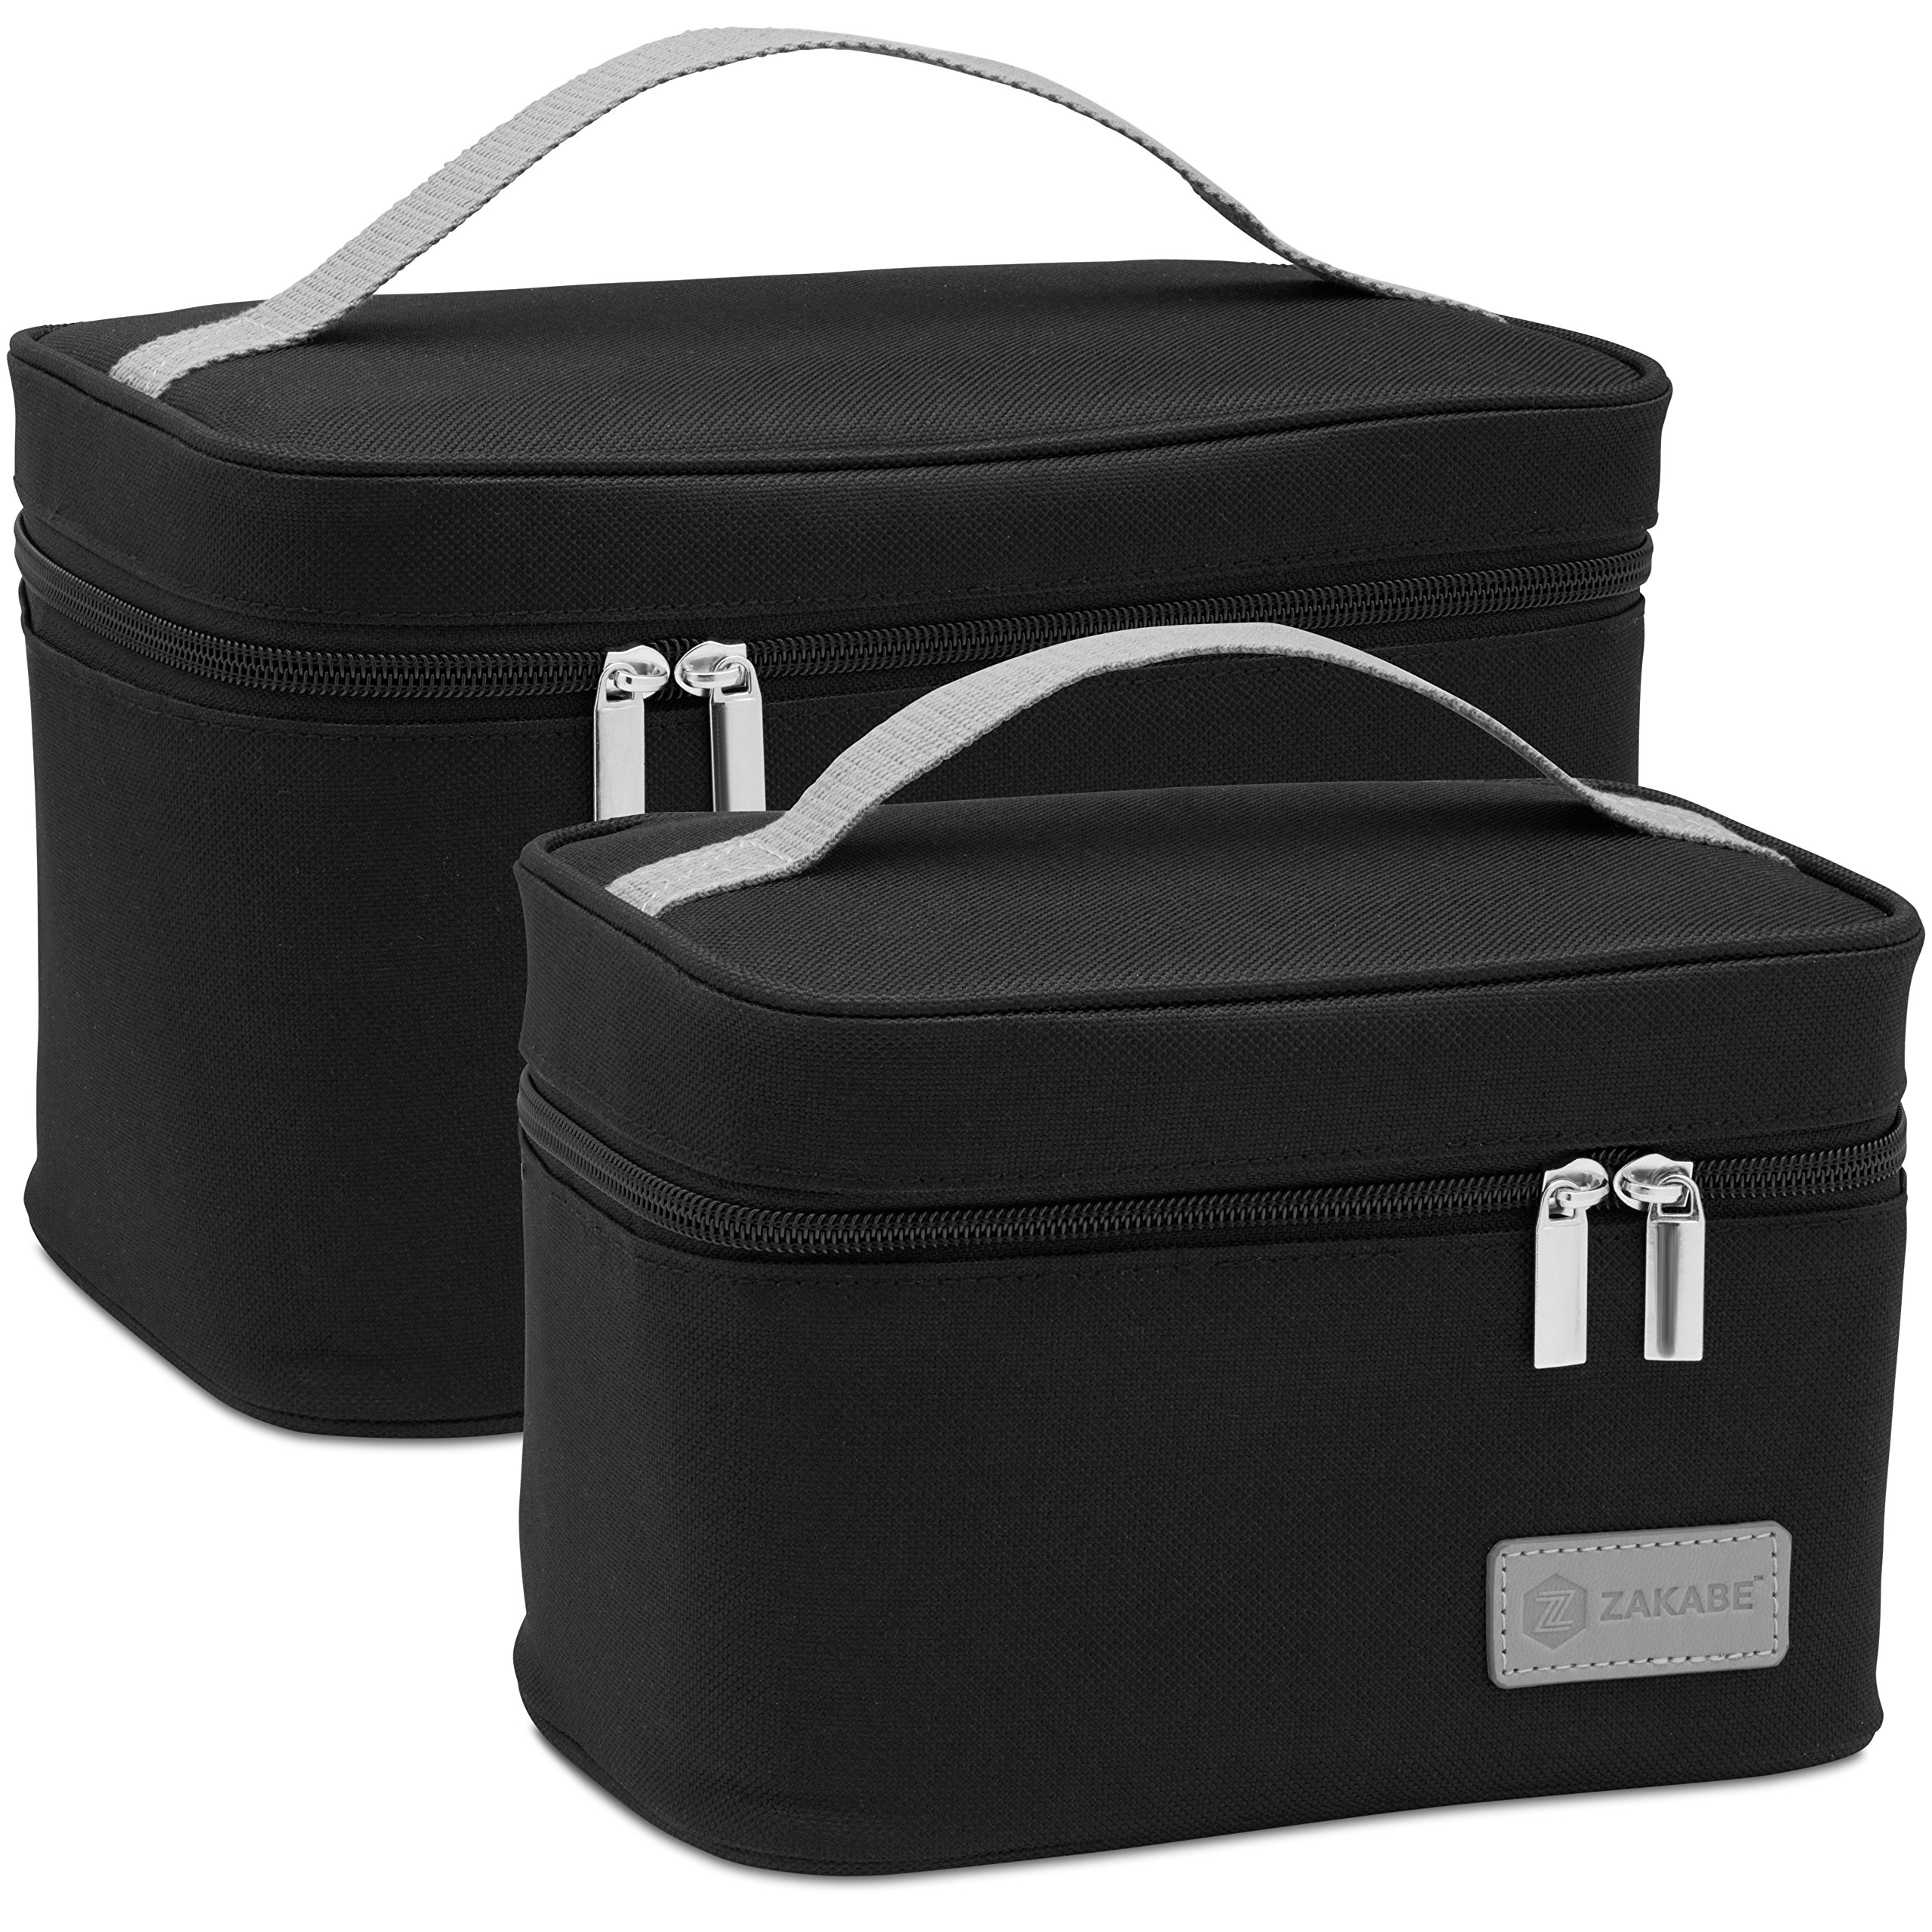 Zakabe Lunch Bag, Lunch Box, Cooler Bag, Set of 2 Sizes, Insulated, for Women, Kids, Adults, Men, Work or School - Black by Zakabe (Image #1)